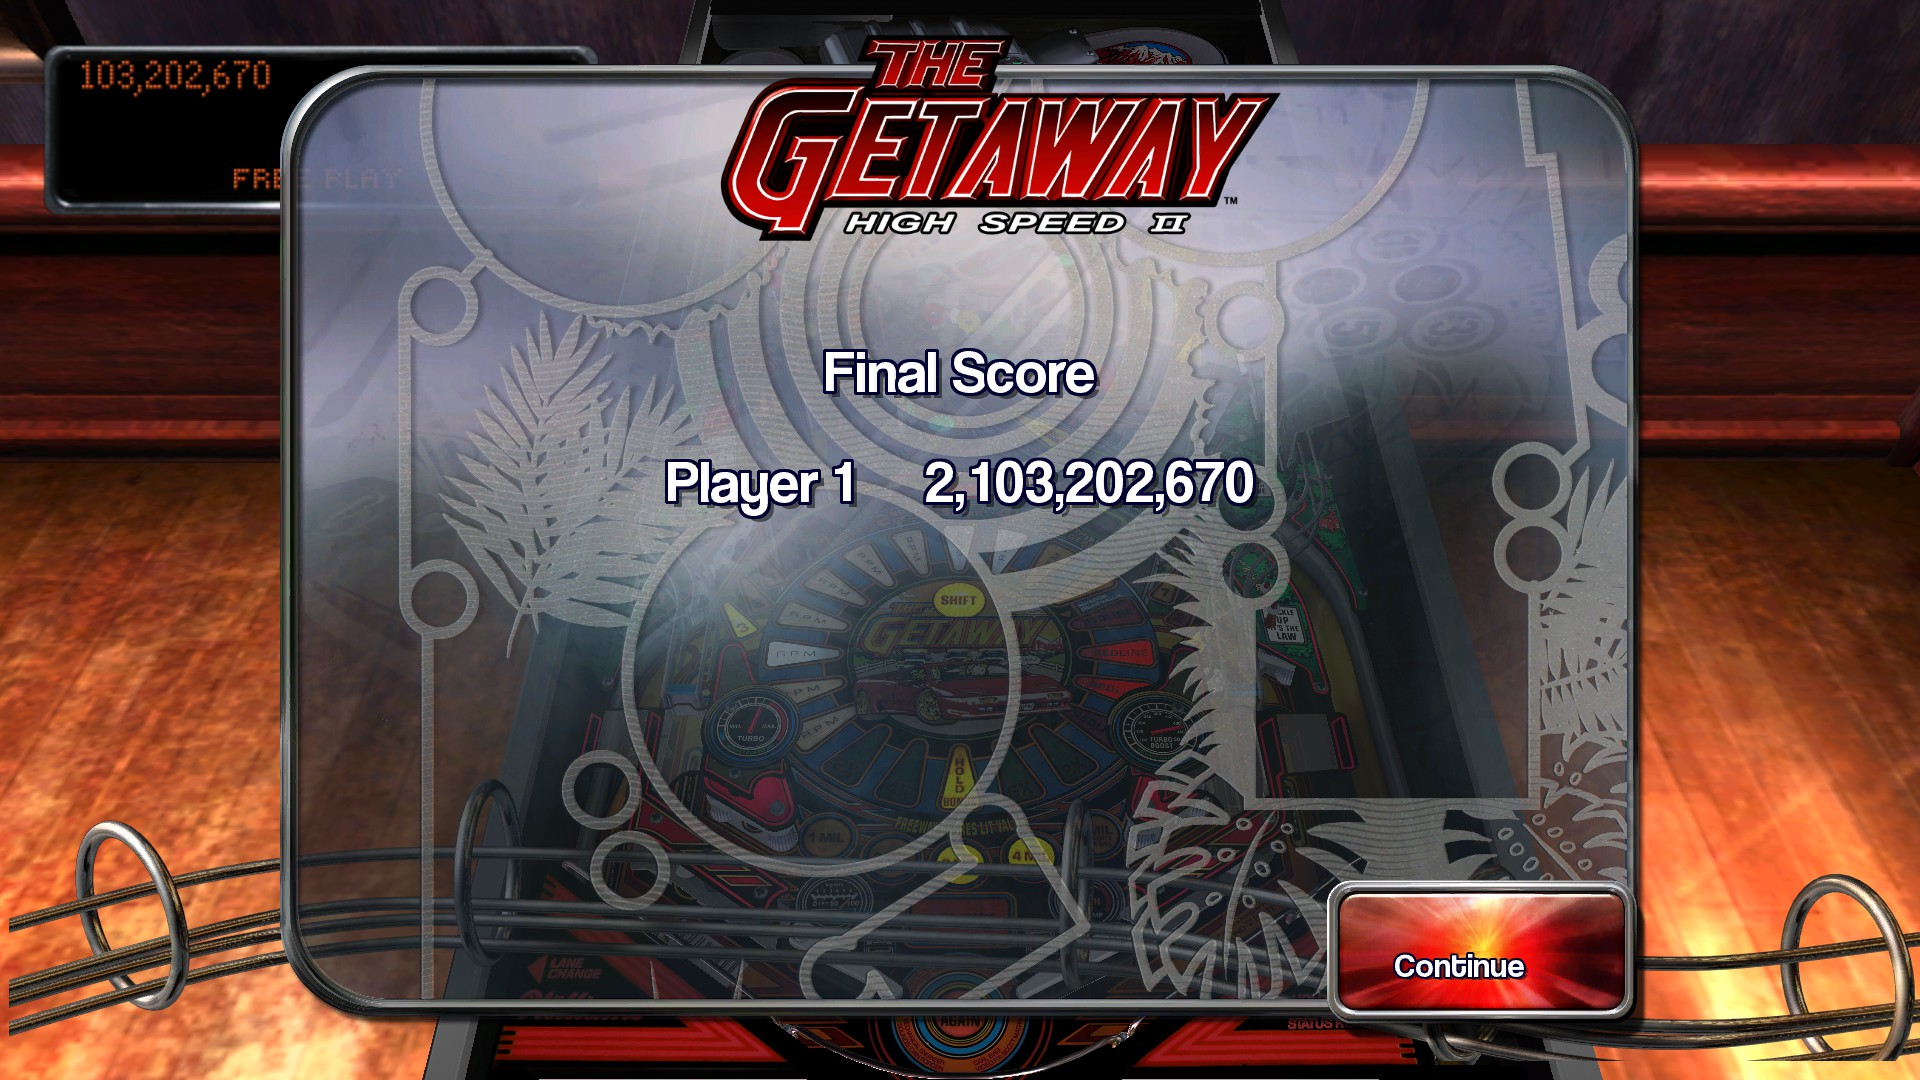 TheTrickster: Pinball Arcade: The Getaway: High Speed II (PC) 2,103,202,670 points on 2015-12-30 06:32:42